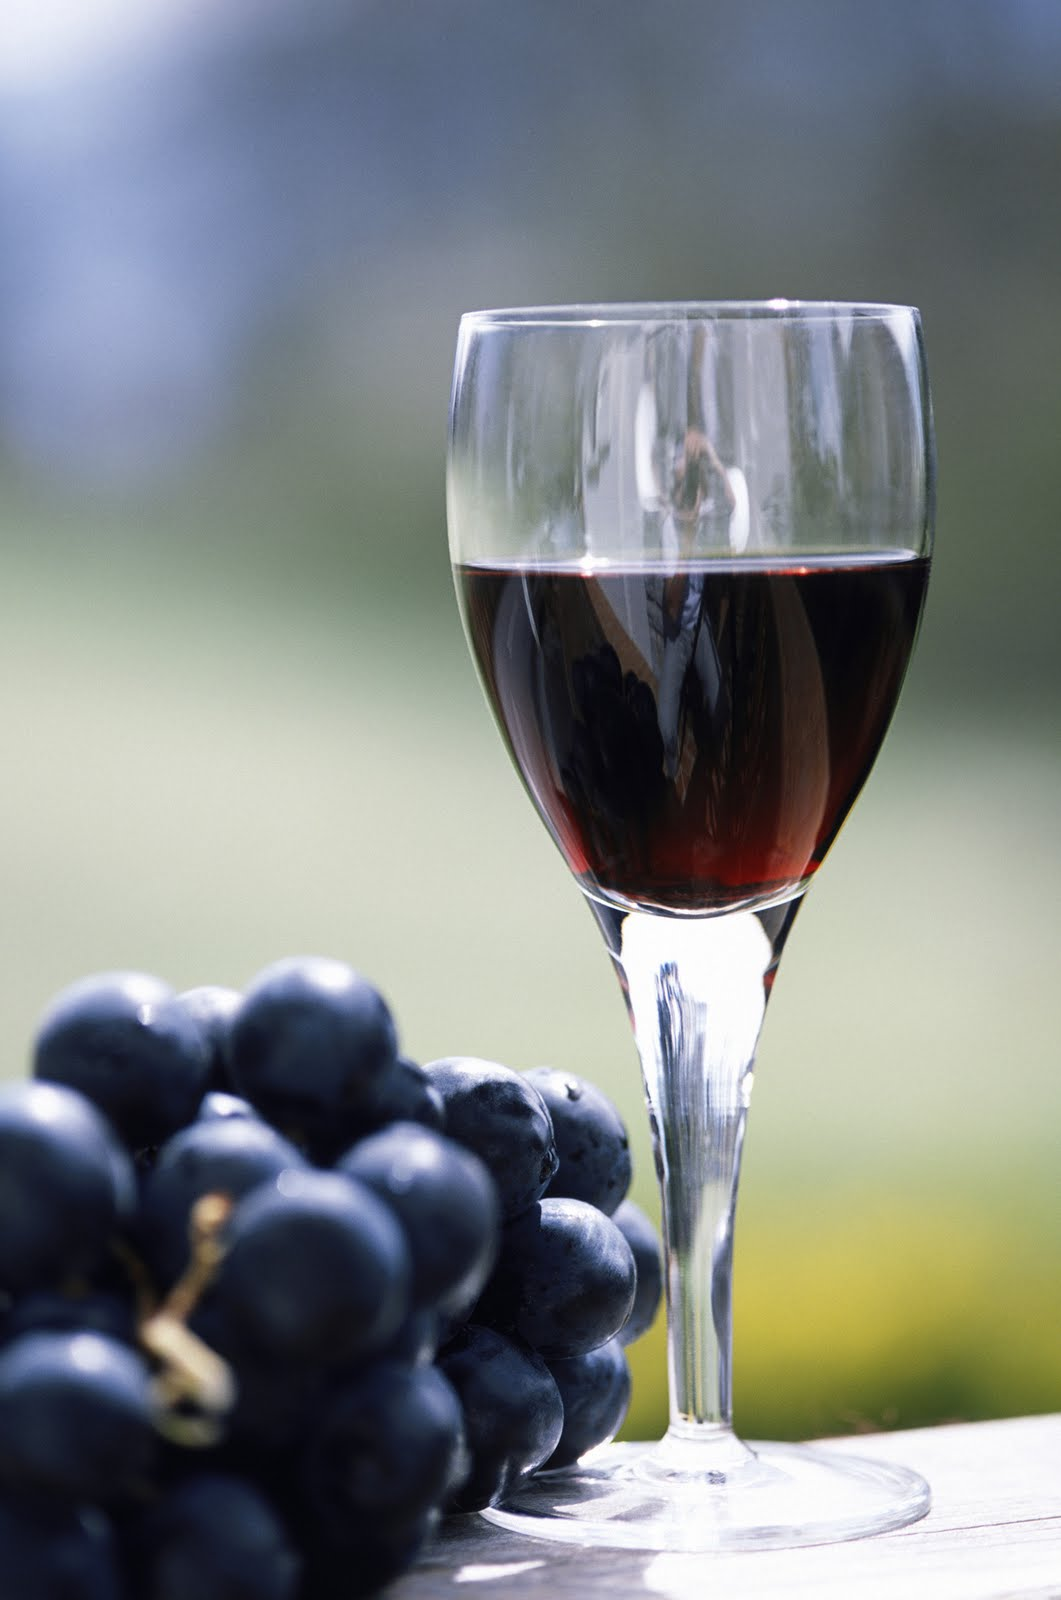 grapes wine hd wallpapers - photo #41